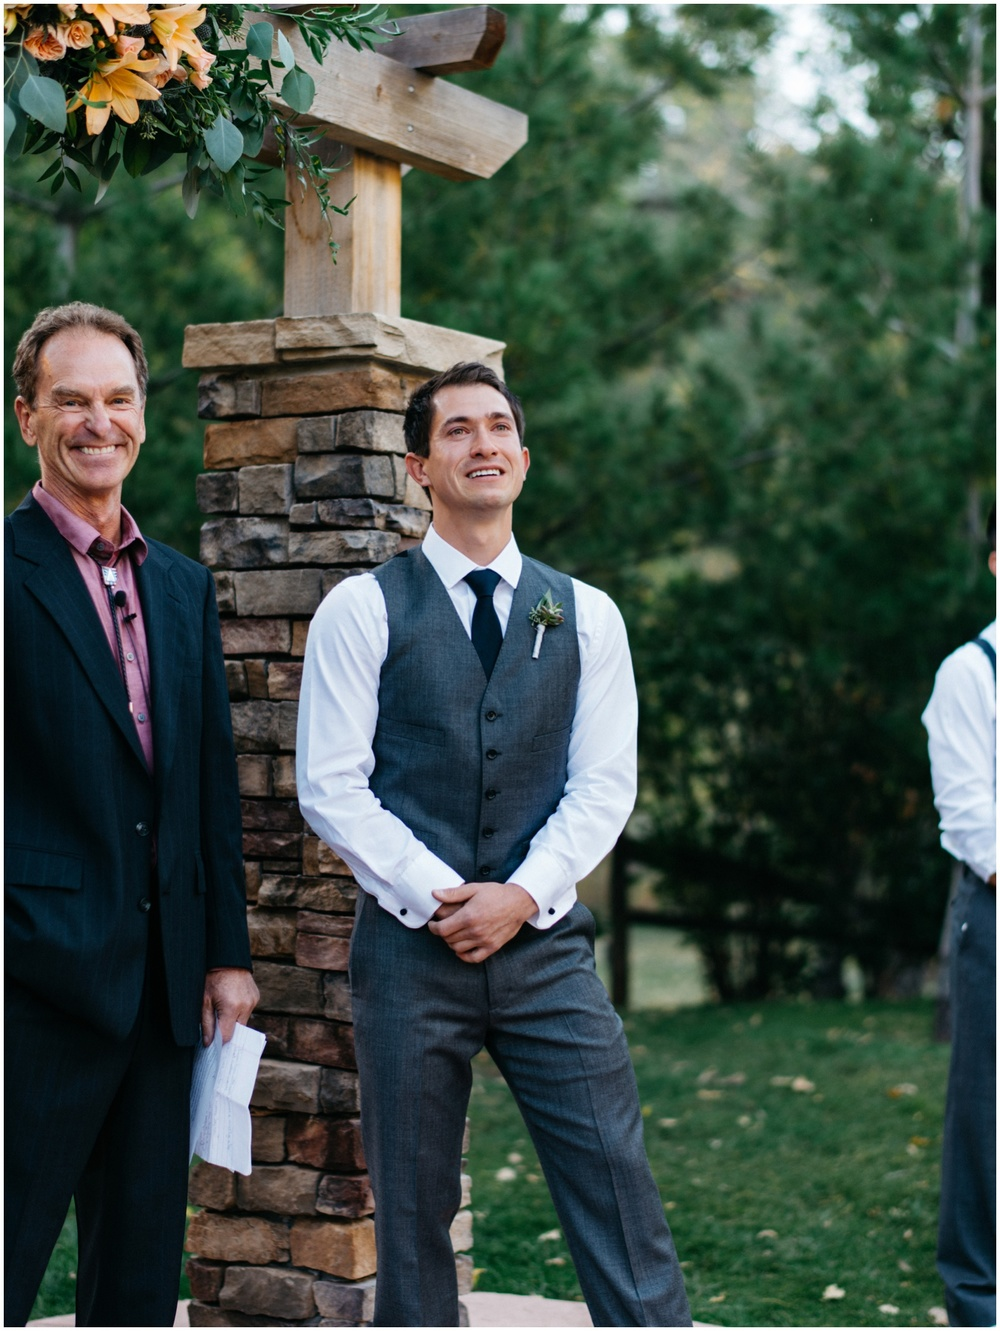 Boulder Colorado Wedgewood Creek Wedding Photographer030.jpg